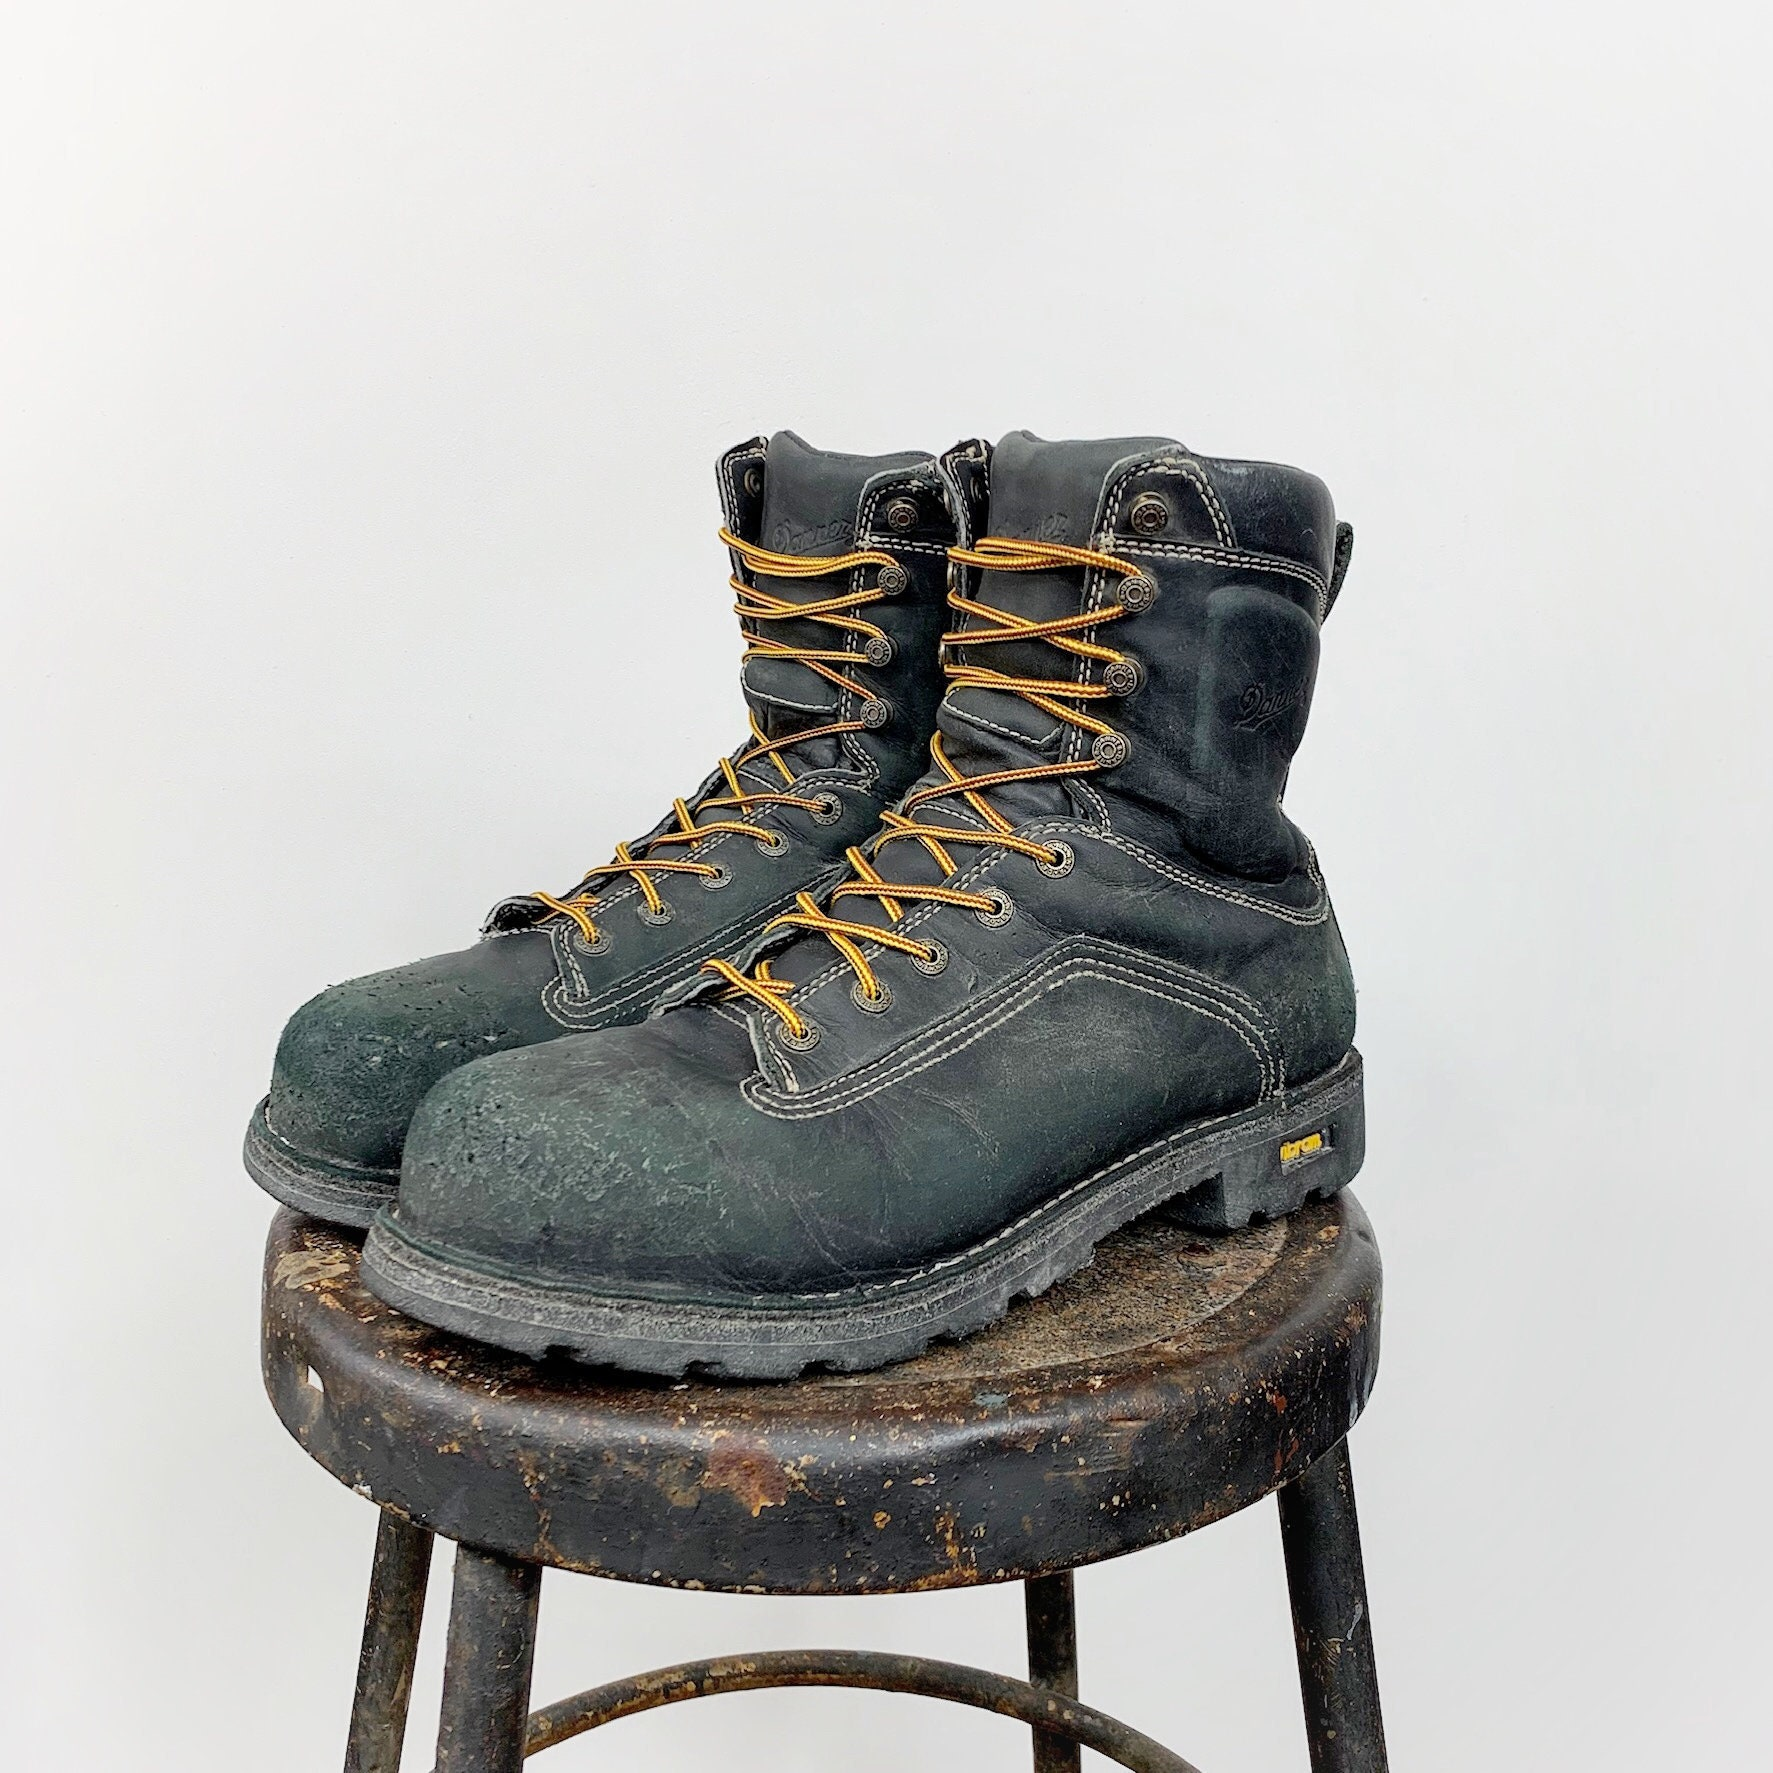 5c282adcdcd6b Danner Quarry Work Boots Men's 11.5 Women's 13.5 Lace Up Leather Grunge  Distressed Ankle Boot Combat Boot Round Toe Navy Blue